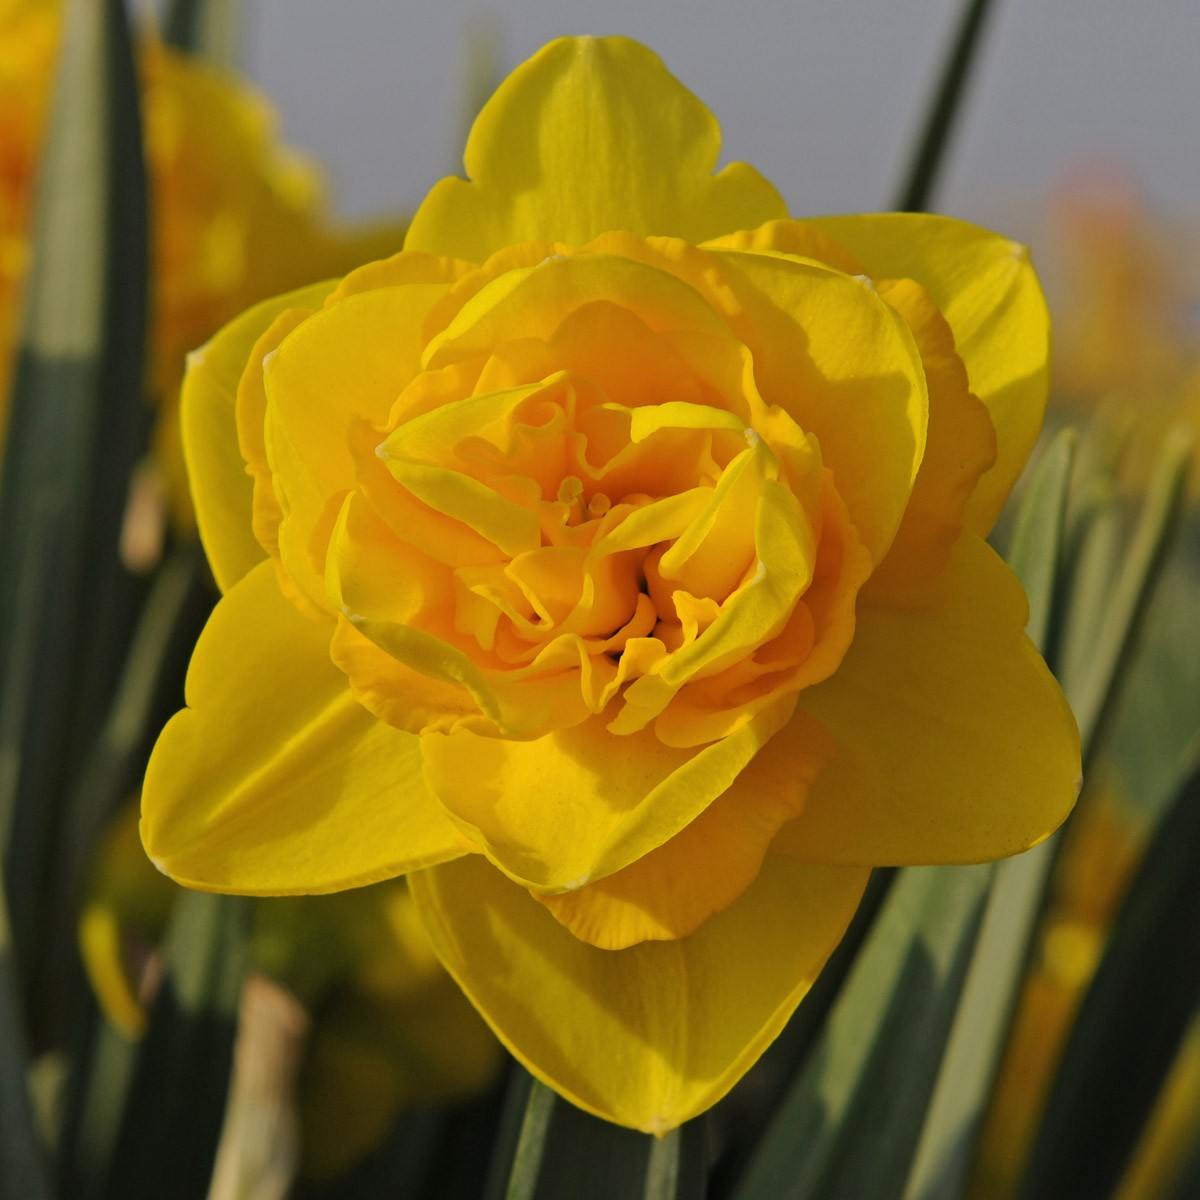 Daffodils Bulbs for Your Garden